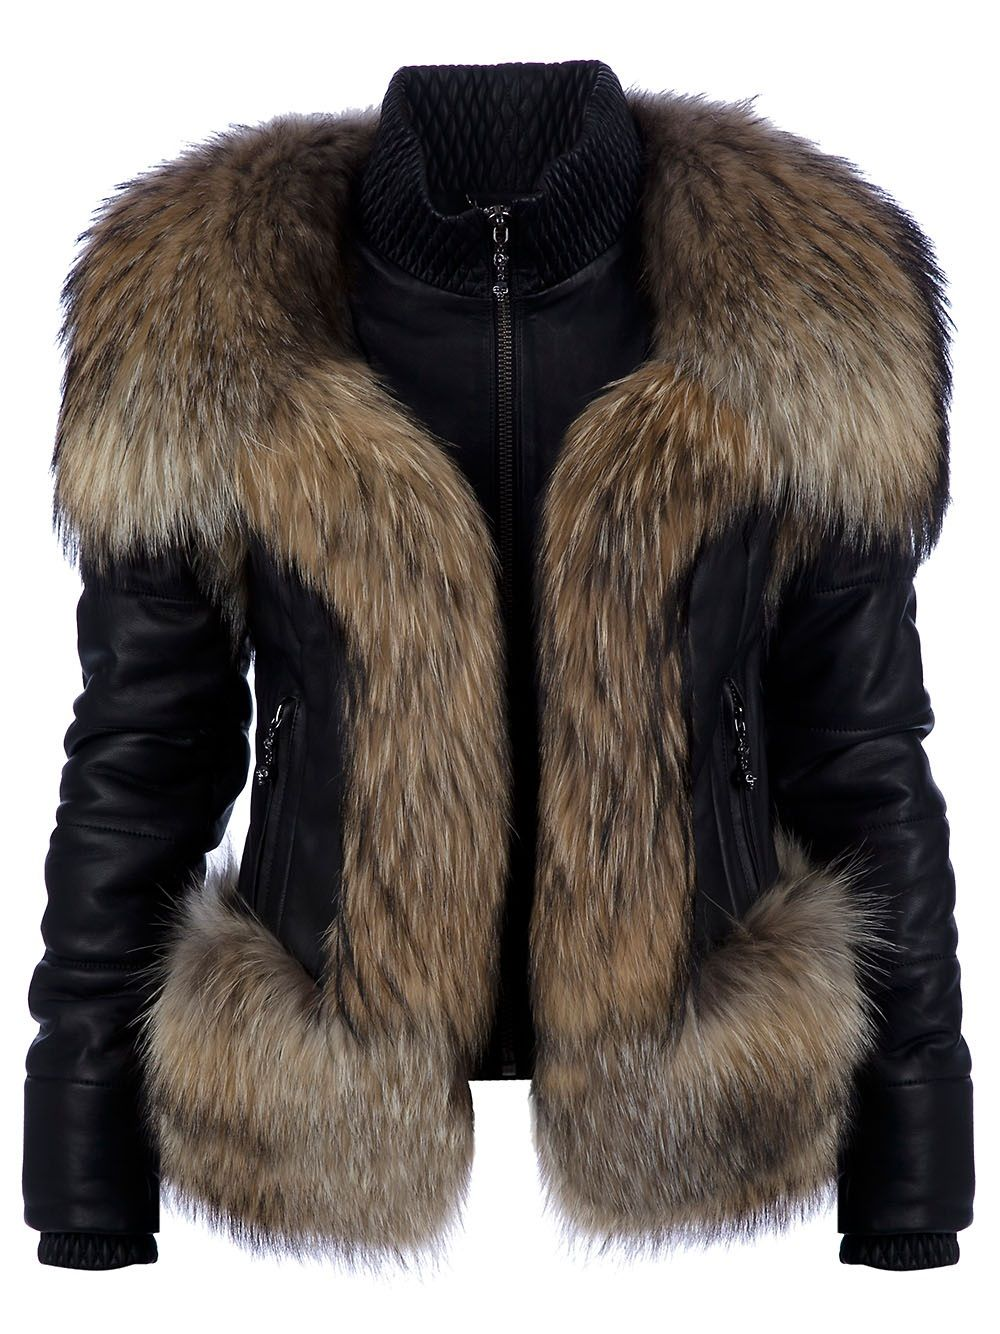 Street Style Black leather jacket and faux fur shrug